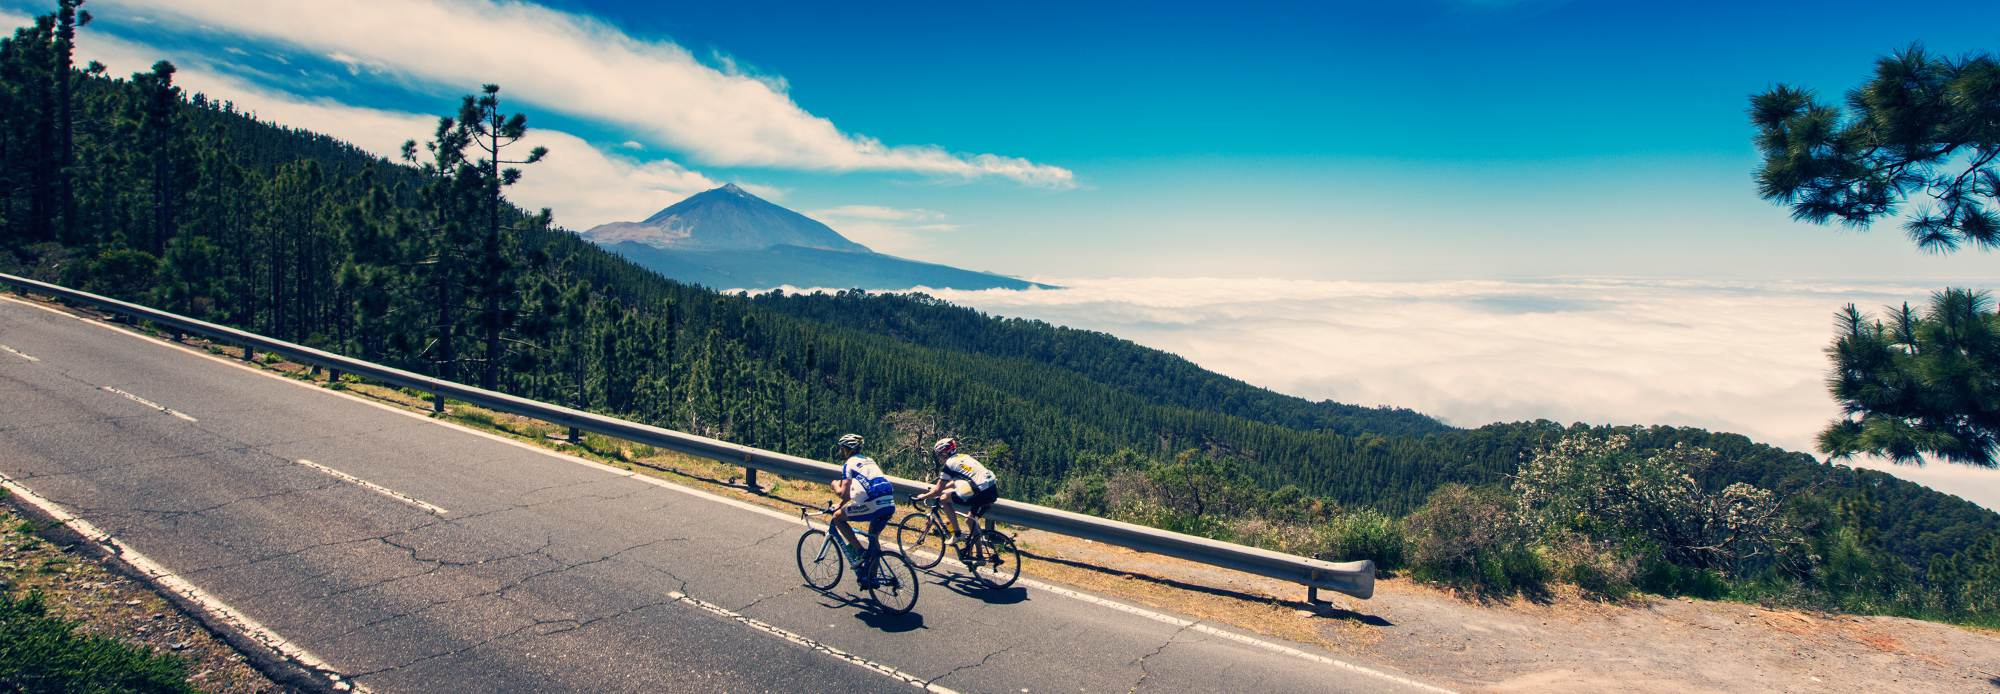 triathlon-bike-mountain-tenerife